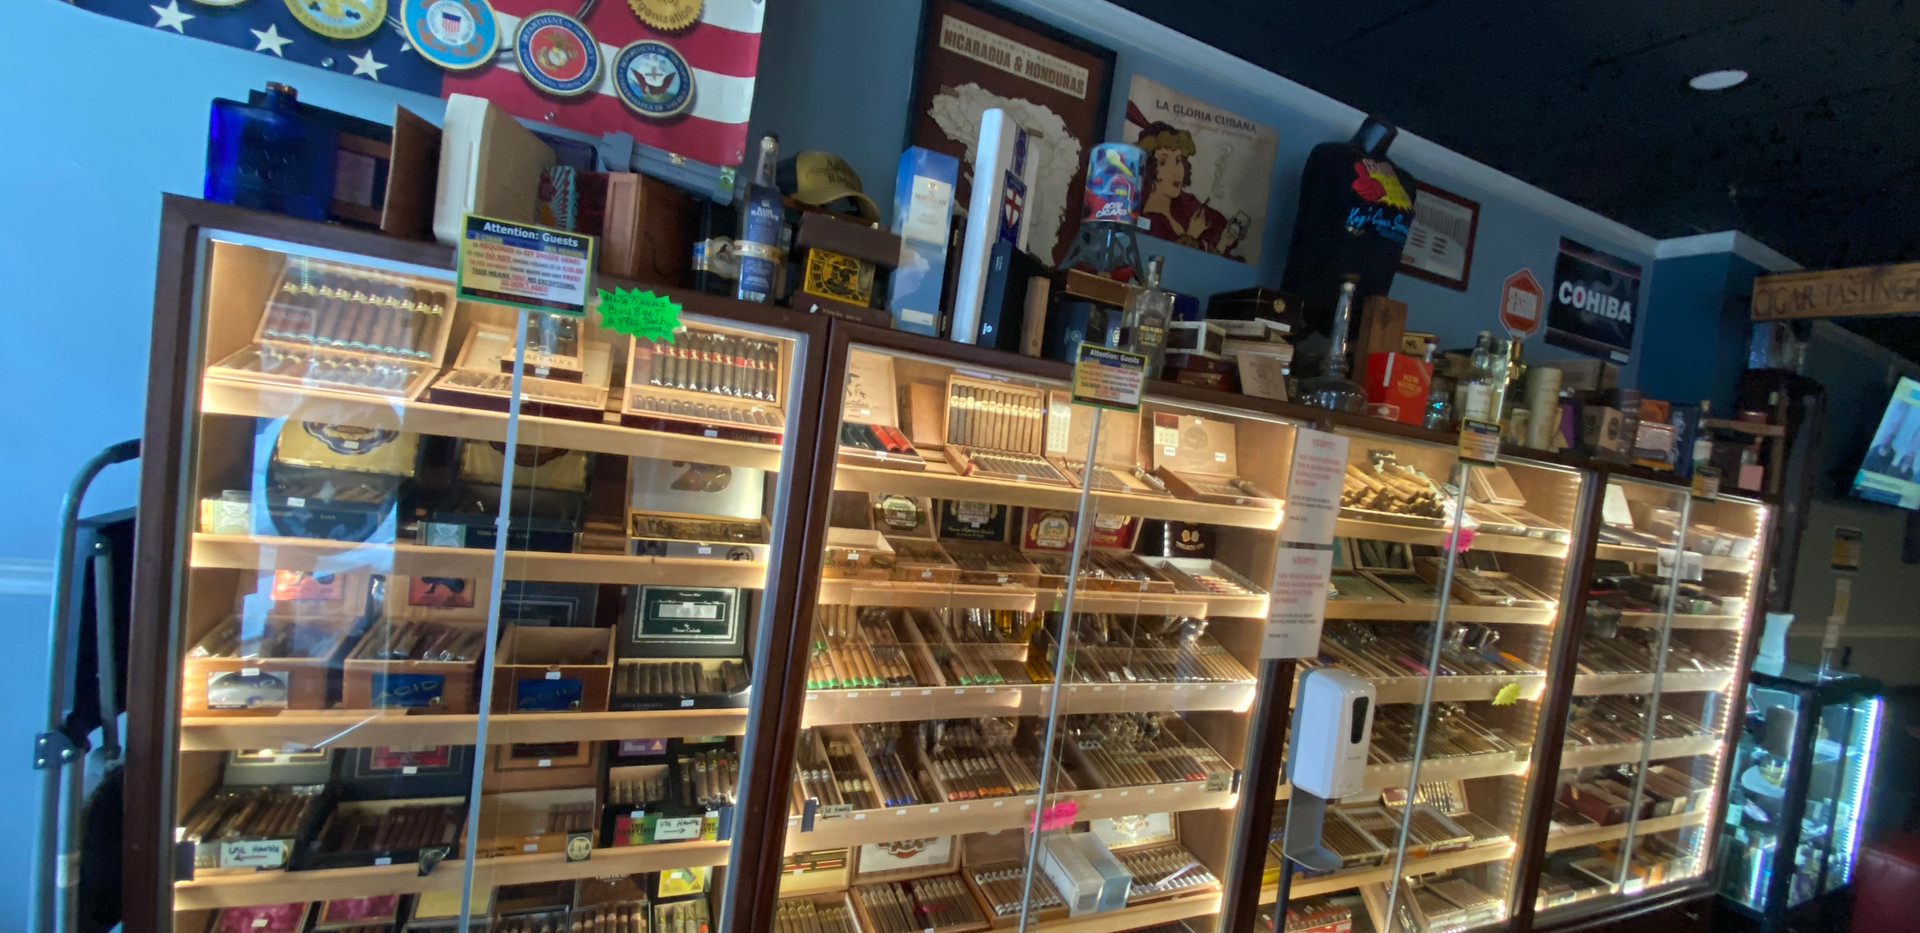 Over 350 Premium & Boutique Cigars